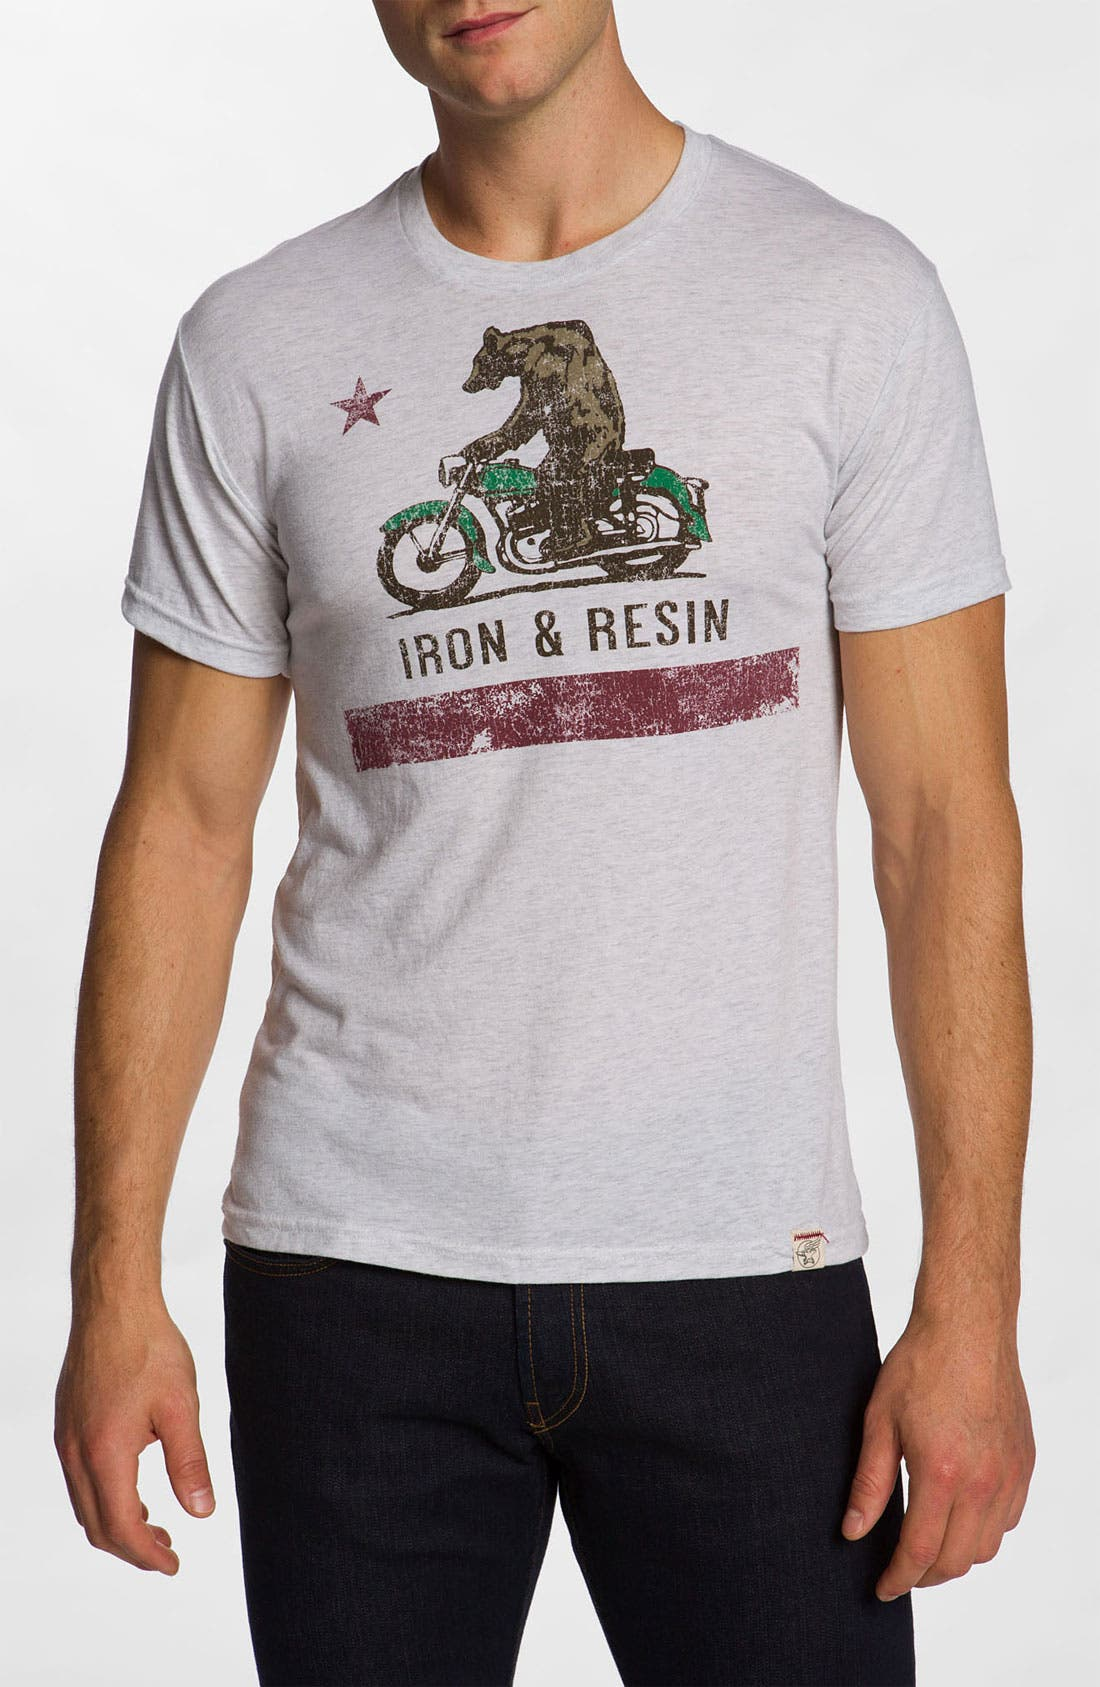 Alternate Image 1 Selected - Iron & Resin 'Moto Bear' Screenprint Tee